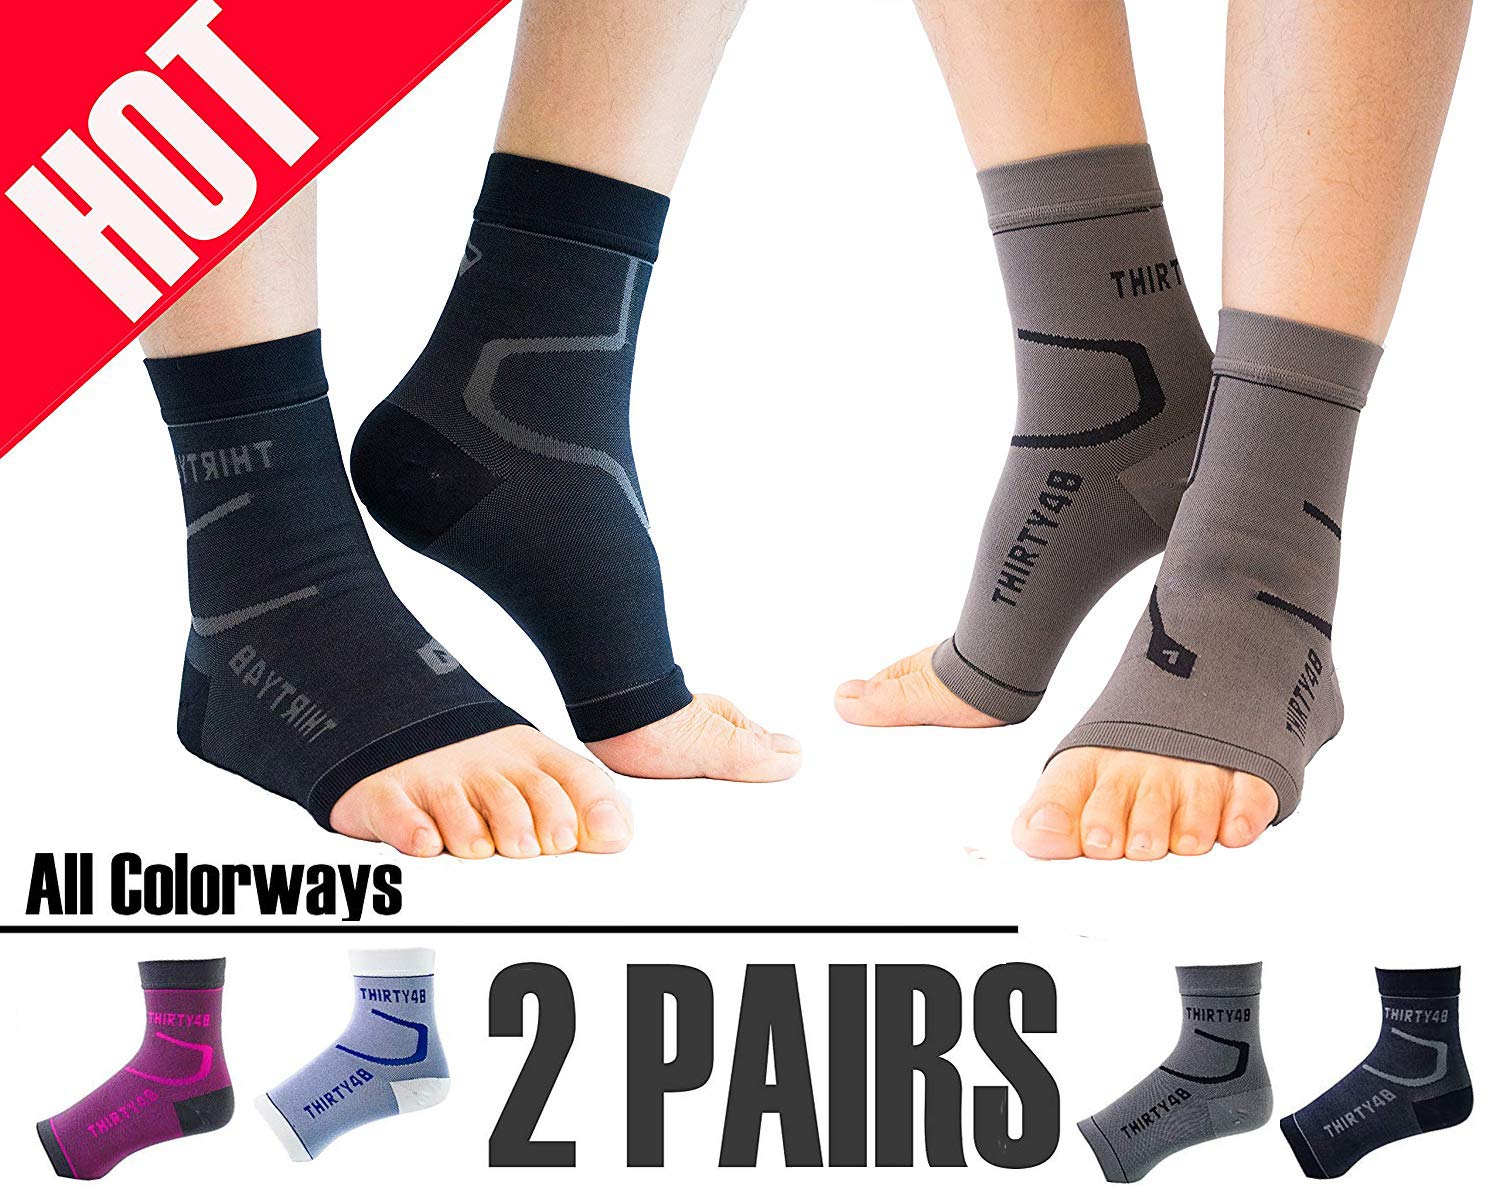 Thirty48 Plantar Fasciitis Socks, 20-30 mmHg Foot Compression Sleeves for Ankle/Heel Support, Increase Blood Circulation, Relieve Arch Pain, Reduce Foot Swelling (Black & Grey (2 Pairs), X-Large) by Thirty48